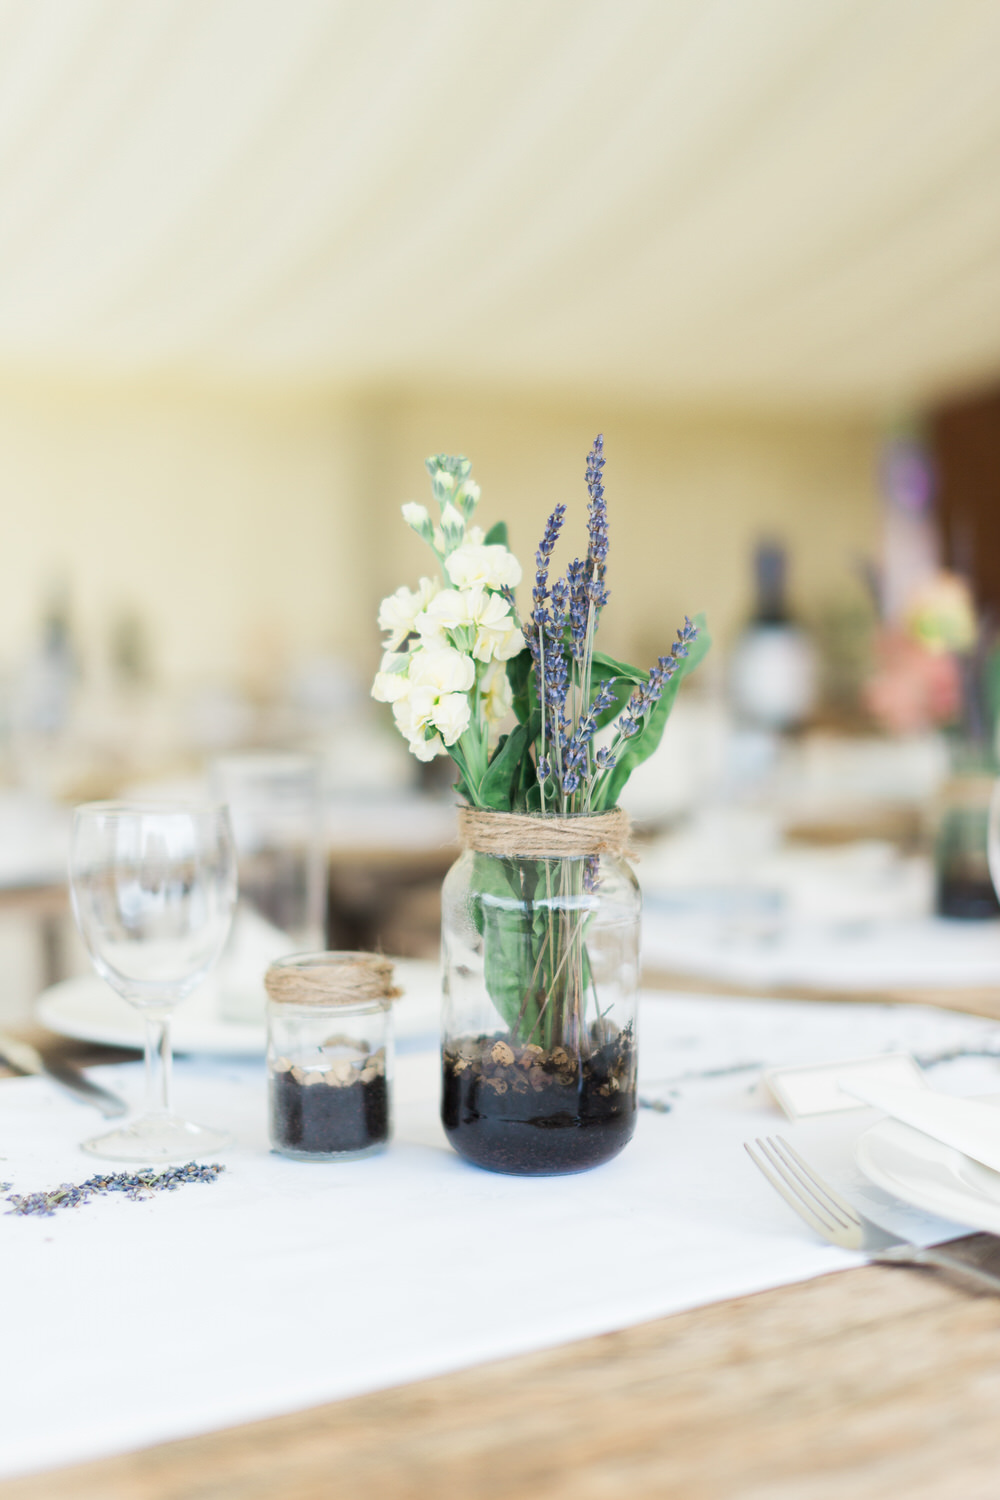 Special-Day-Photography-The-Bringewood-Ludlow-The-Bringewood-Hillside-Wedding-Close-up-detail-of-lavendar-table-decorations.jpg